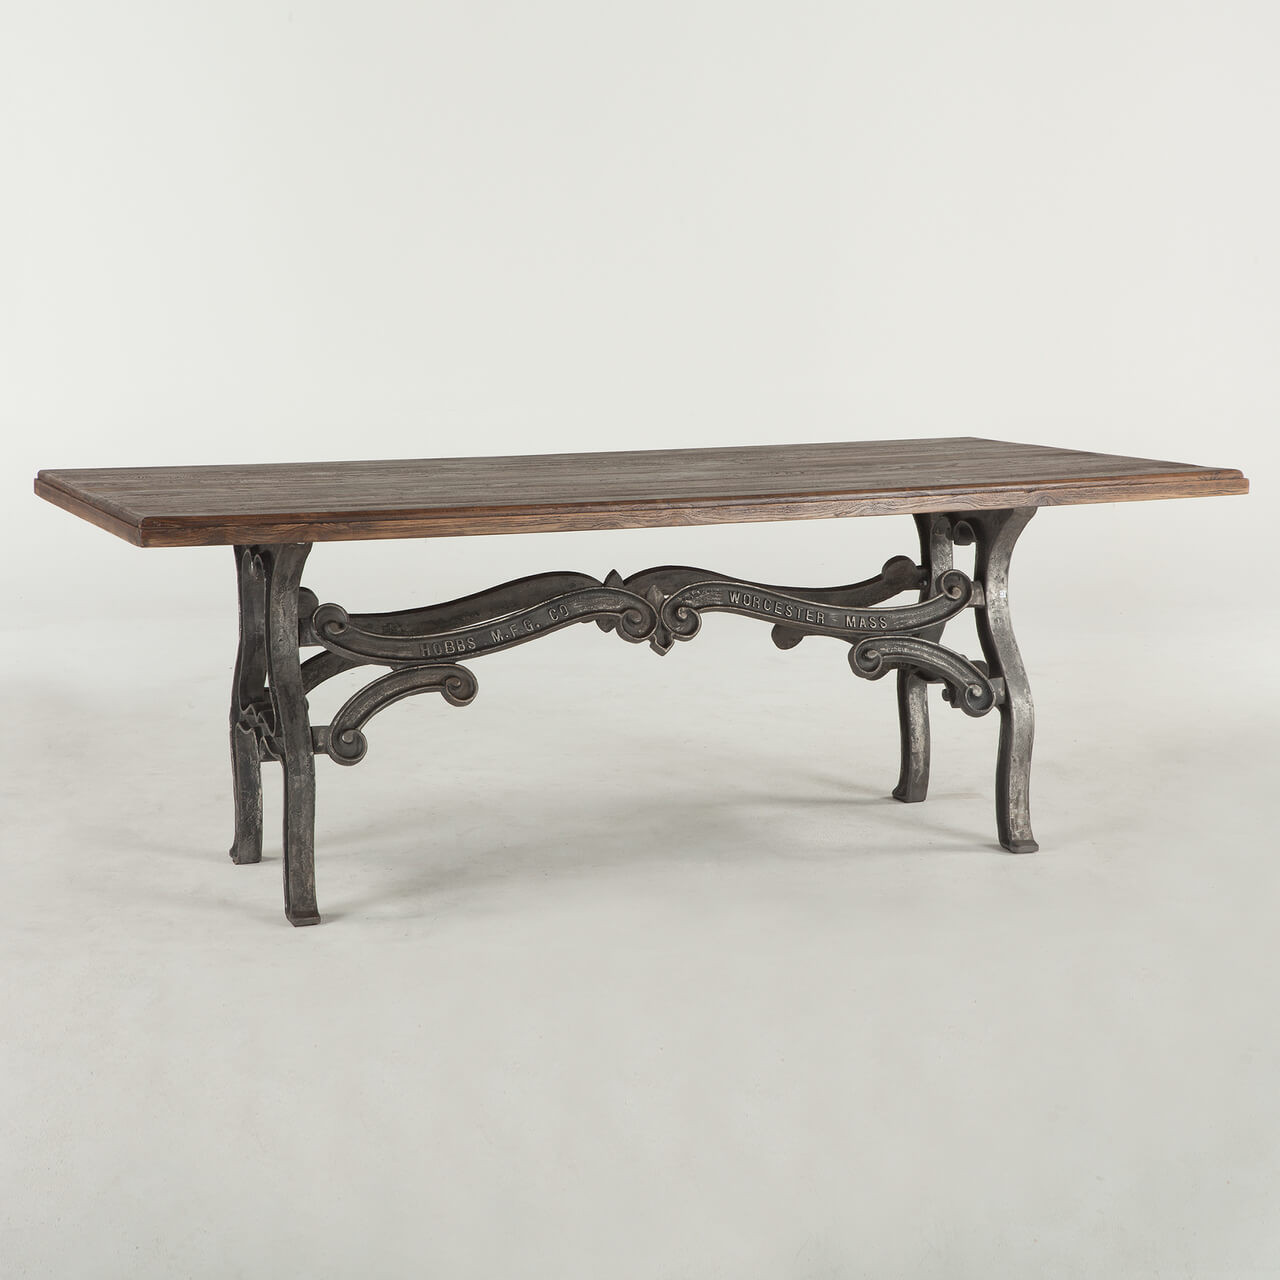 Hobbs French Industrial Dining Room Table 84 Zin Home